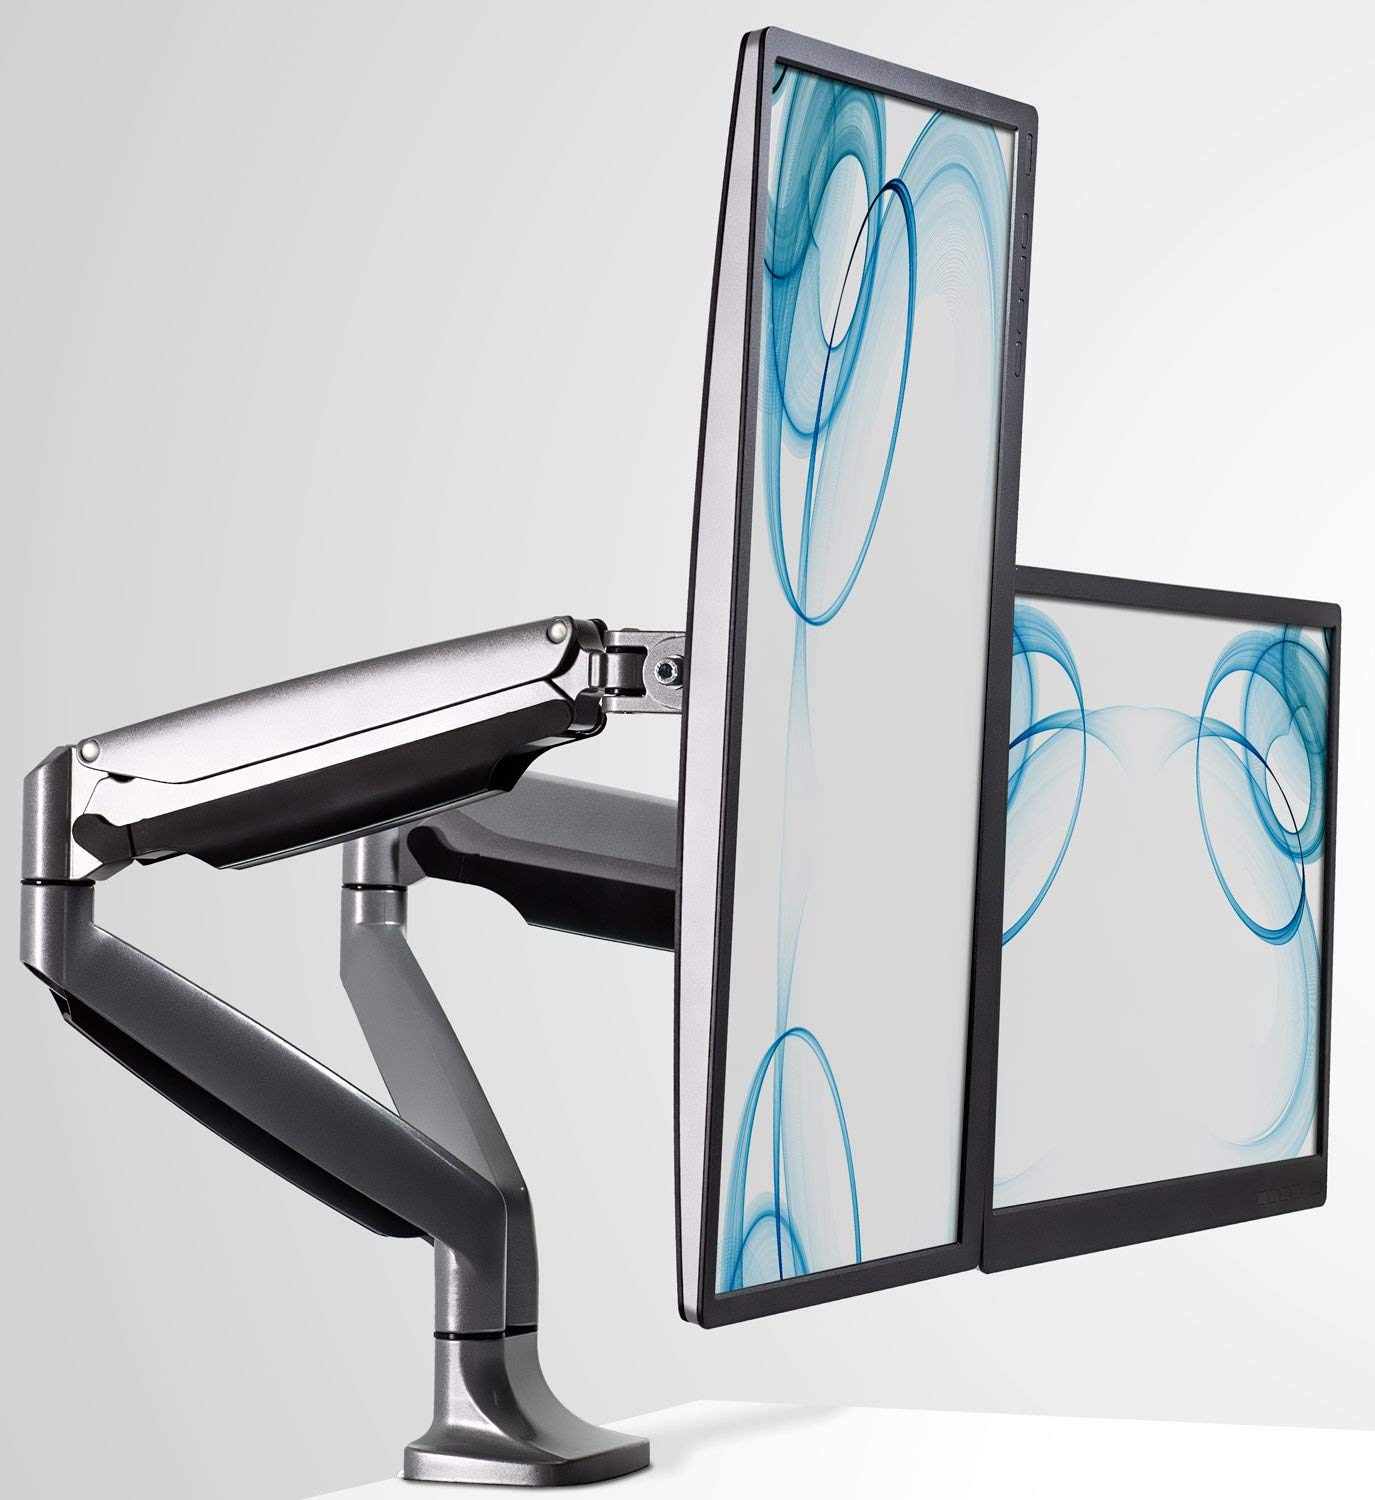 Mount-It! Dual Monitor Desk Mount Arm, Height Adjustable Full Motion Monitor Stand With Gas Spring Arms, Fits 24, 27, 29, 30, 32 Inch Computer Screens